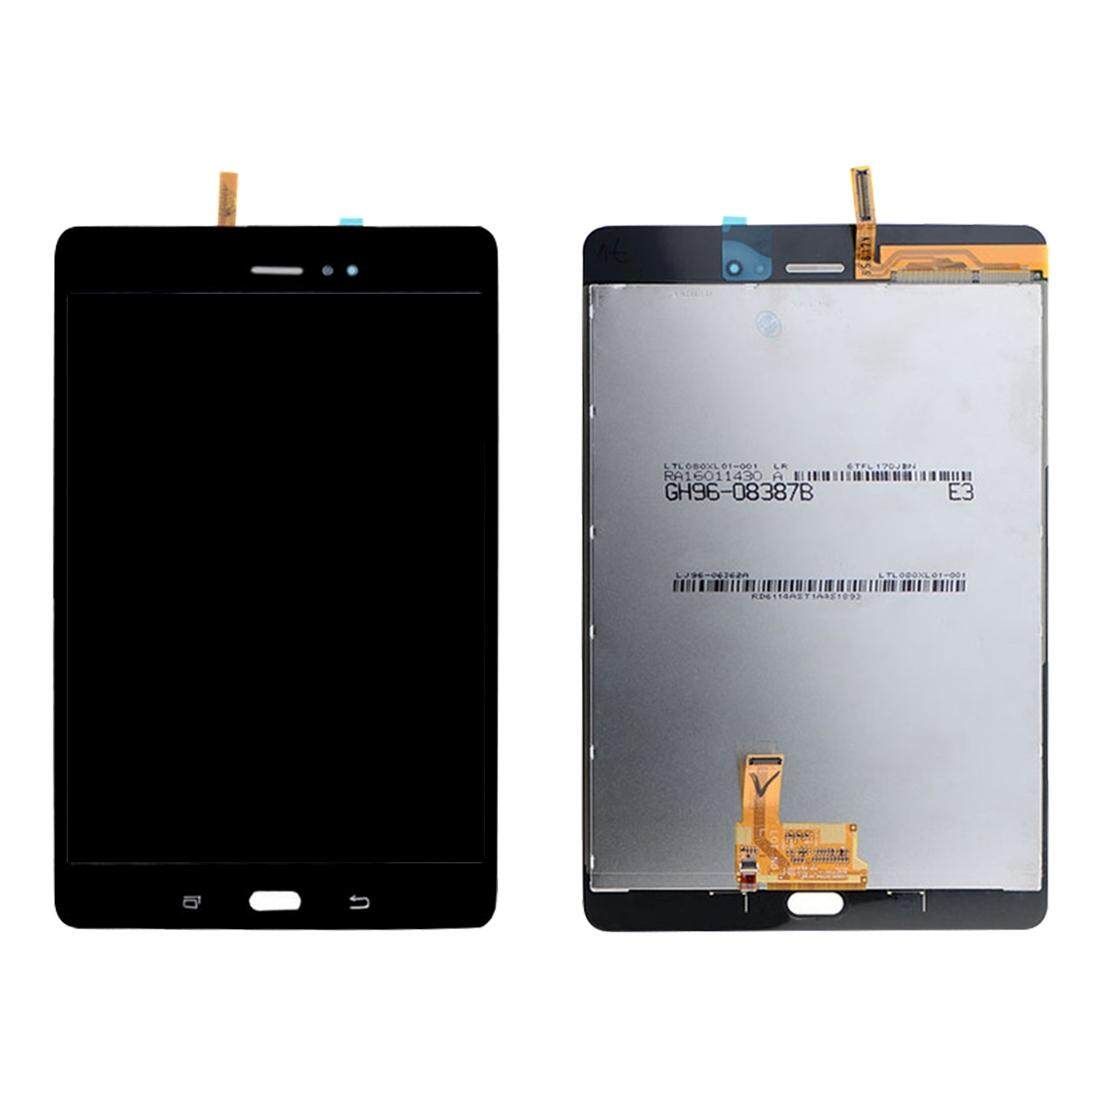 Features For Samsung Galaxy Tab A 7 0 2016 3g Version T285 Lcd P355 80 Ipartsbuy T355 Screen